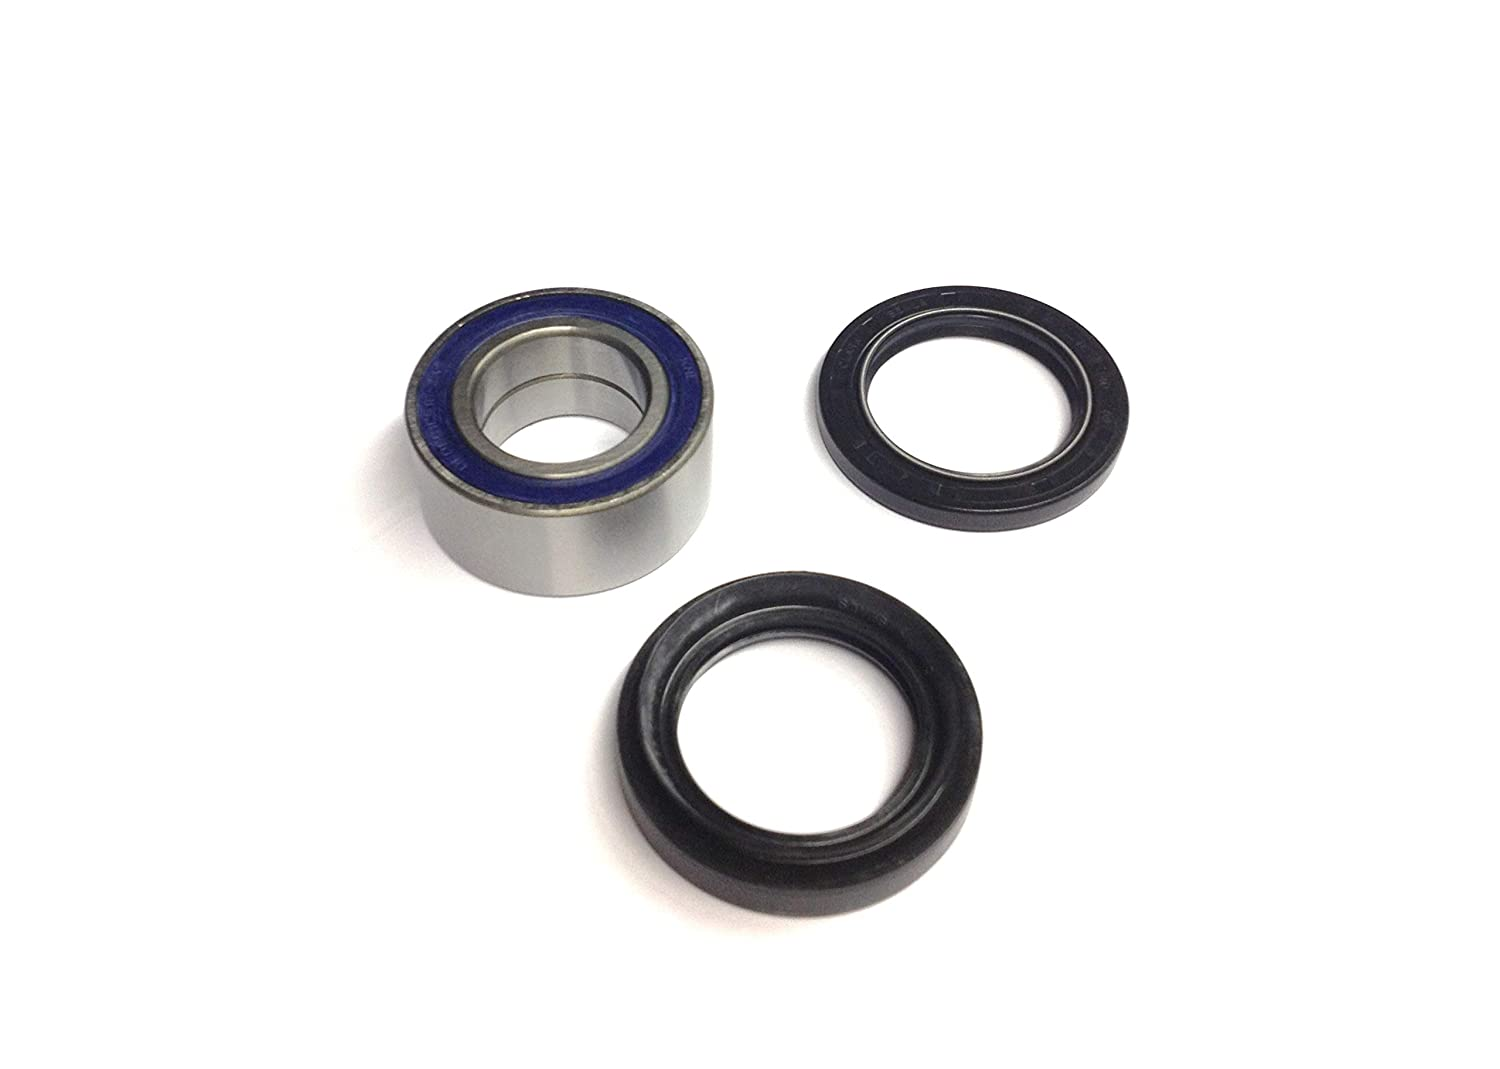 ATVPC Front Wheel Bearing Kit for Bombardier Traxter 500 1999-2001